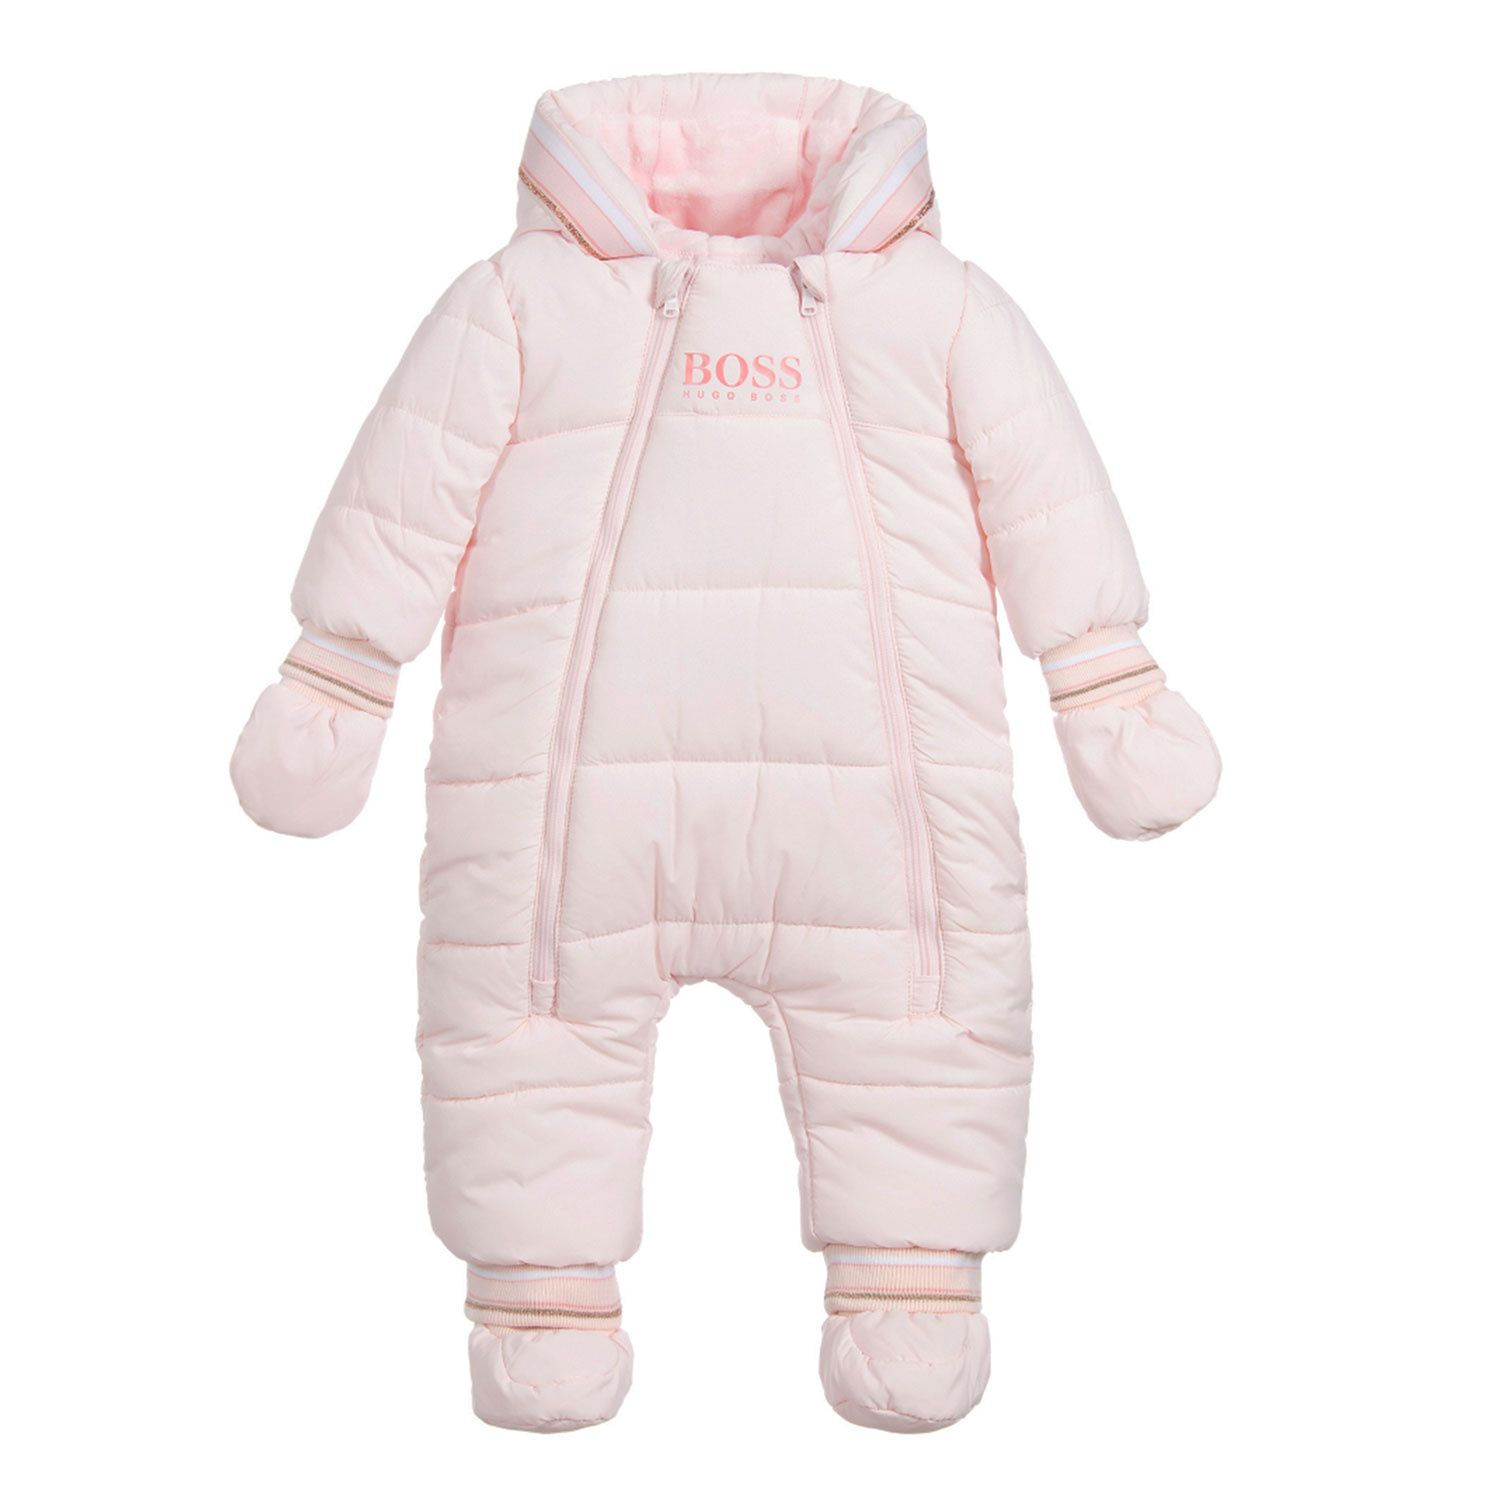 Picture of Boss J96089 baby snowsuit light pink